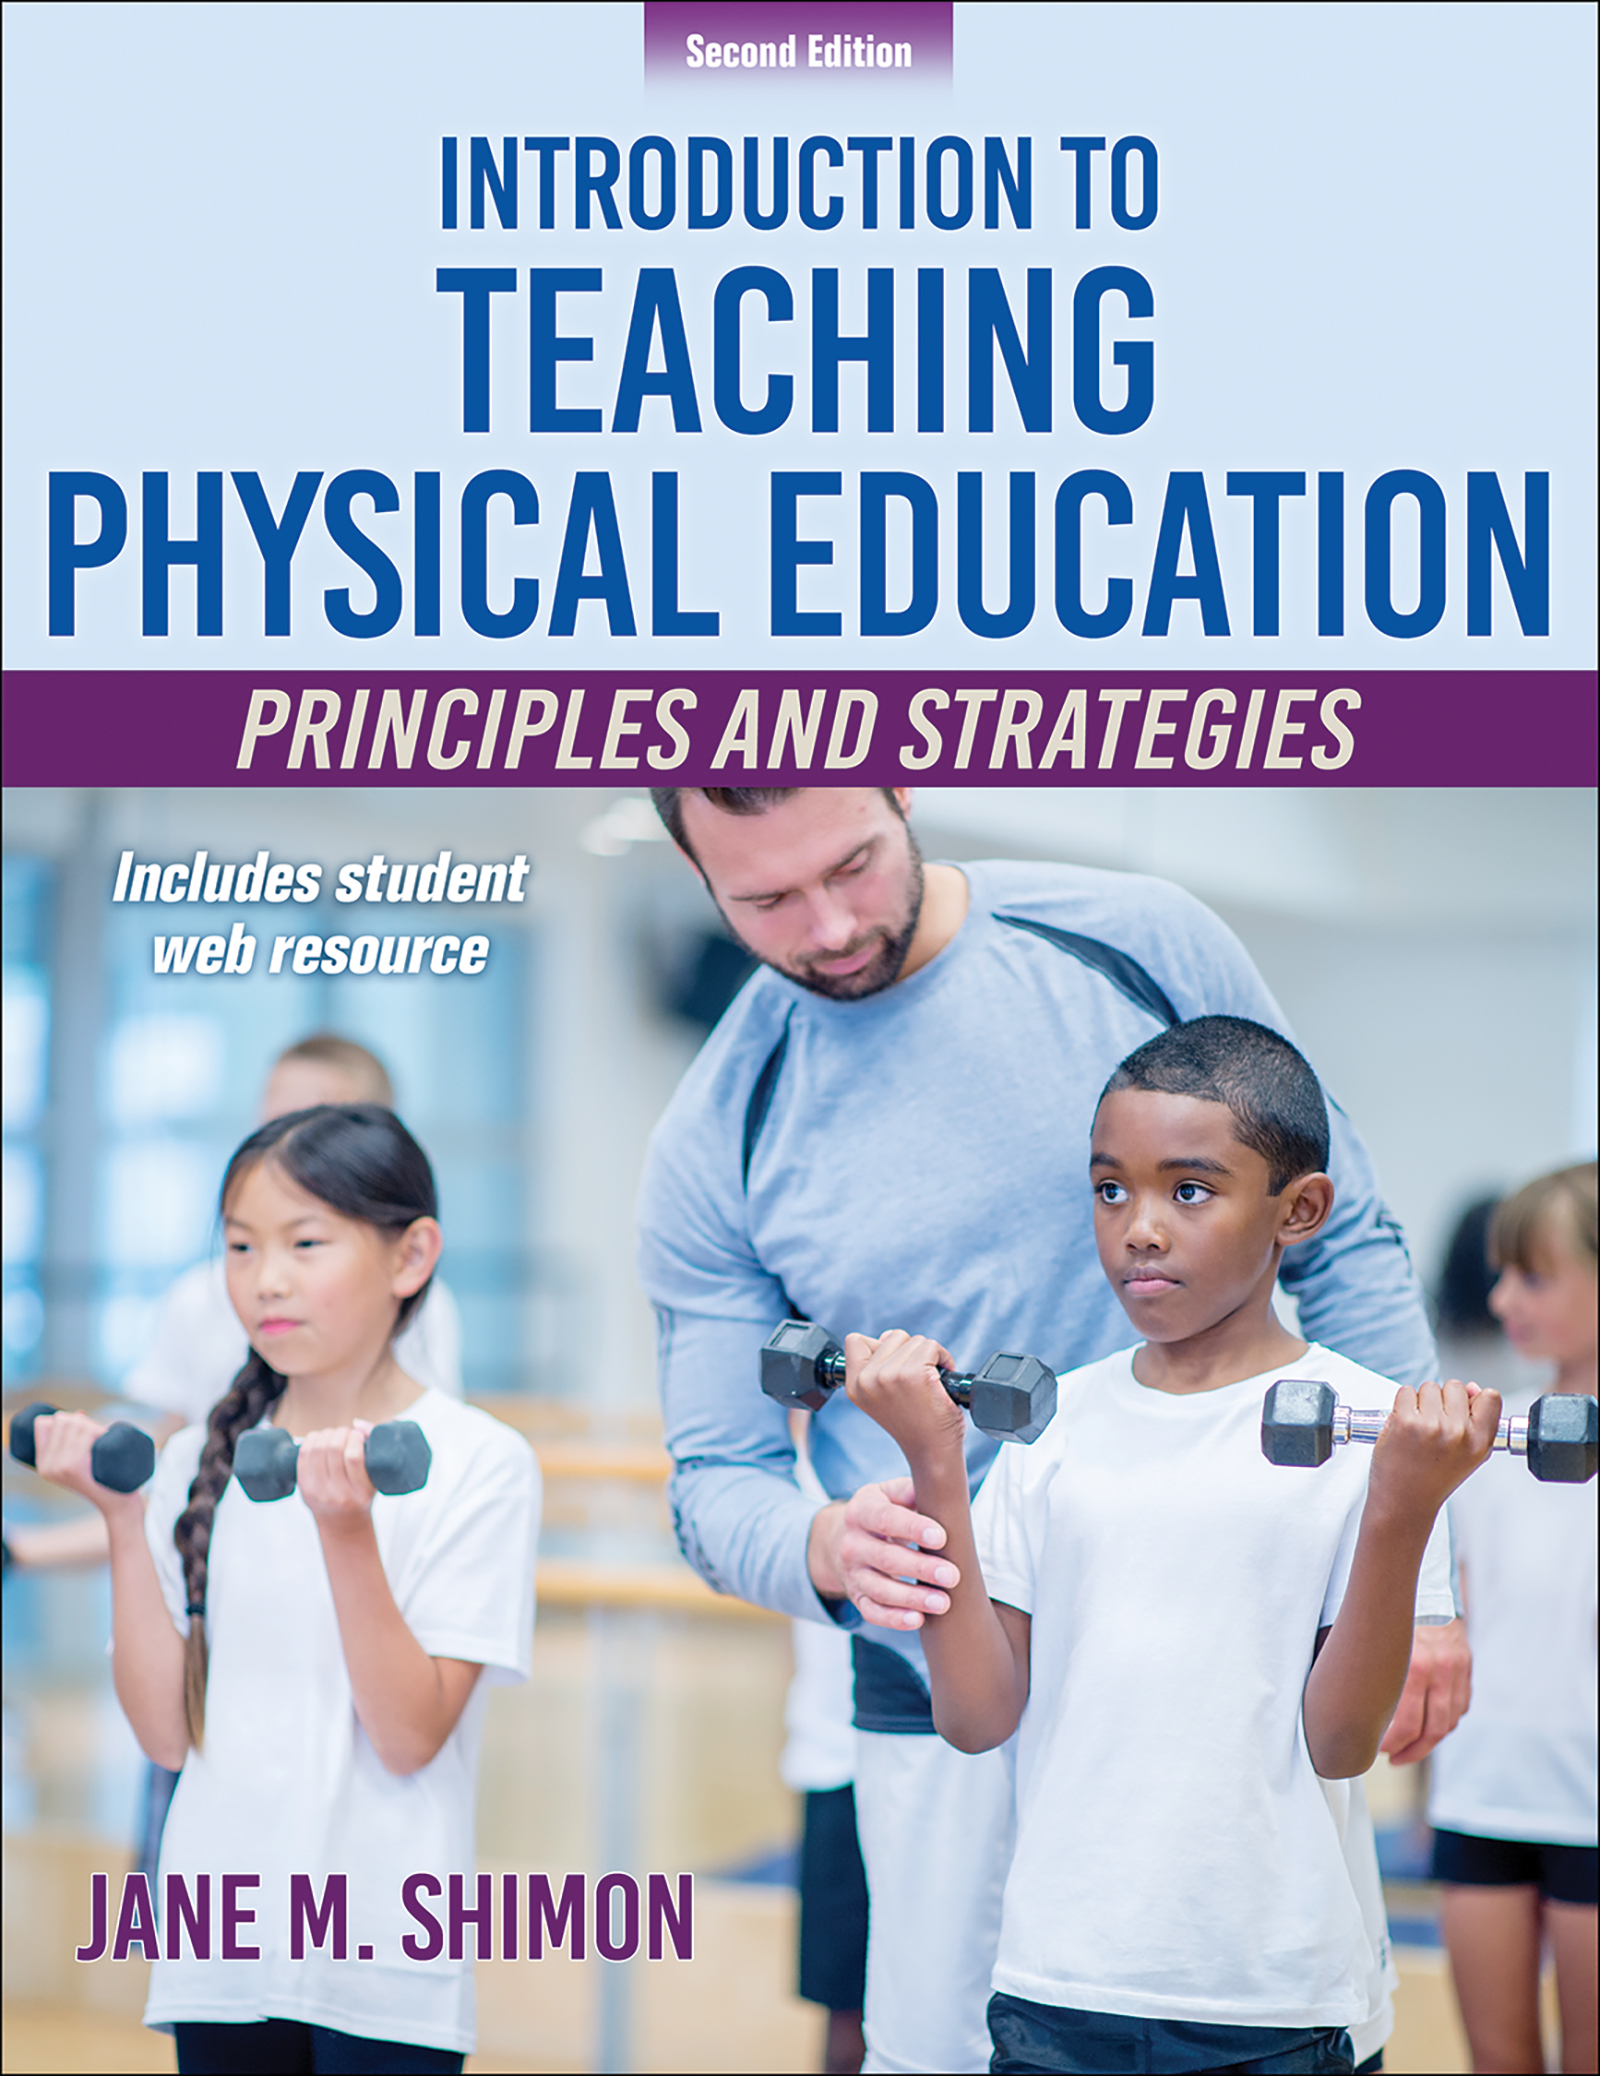 Introduction to Teaching Physical Education 2nd Edition With Web Resource